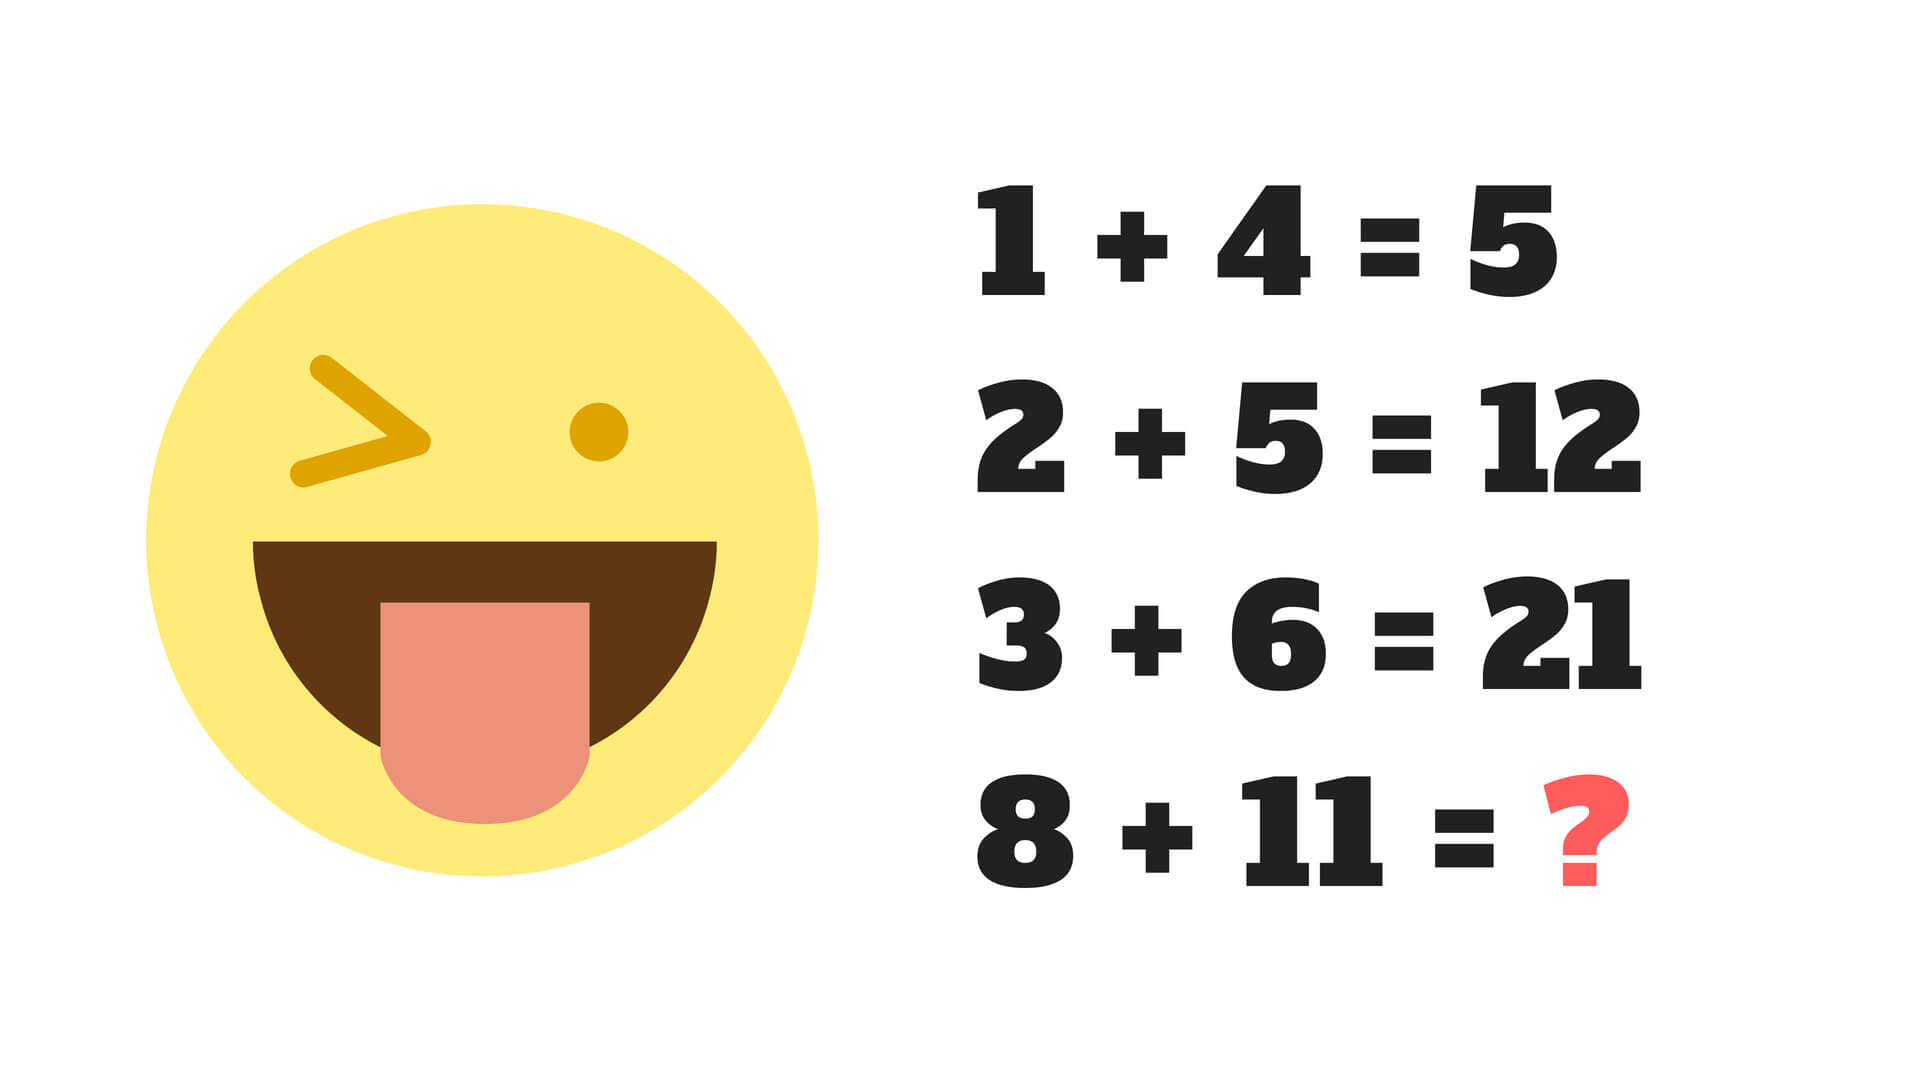 Only people with high IQ can solve this test